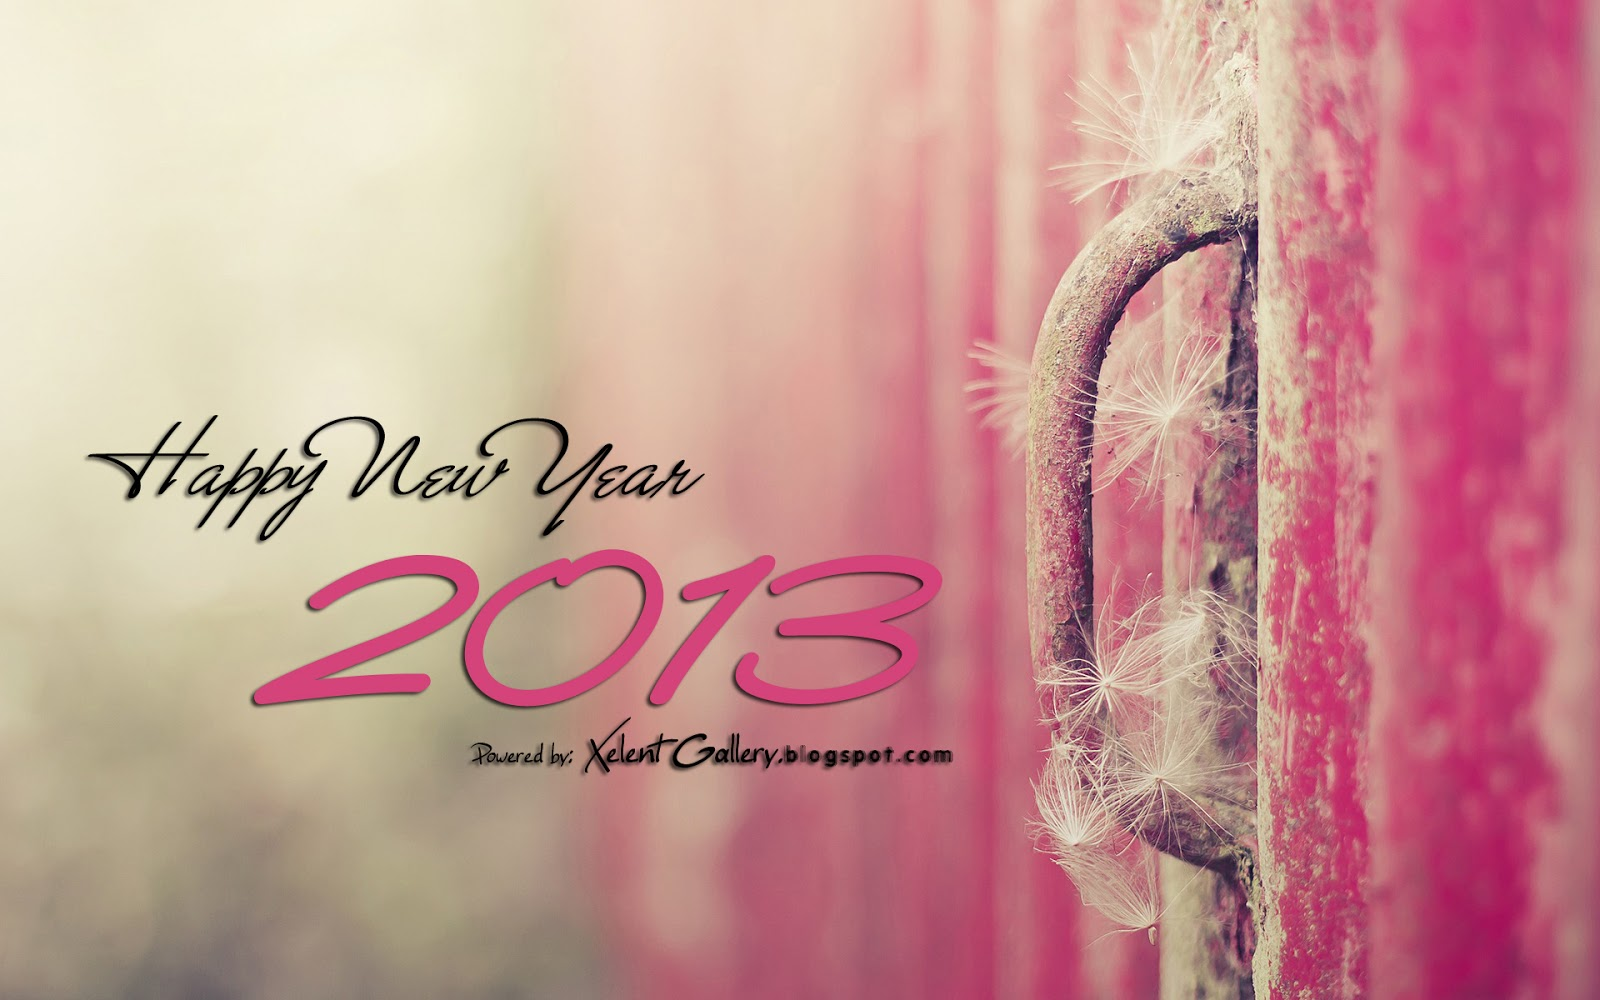 http://2.bp.blogspot.com/-RdbY0WO28fI/UNyDs_0oYdI/AAAAAAAACAM/wm91Q9R2fuw/s1600/2013+Wallpapers+Happy+New+Year+(6).JPG